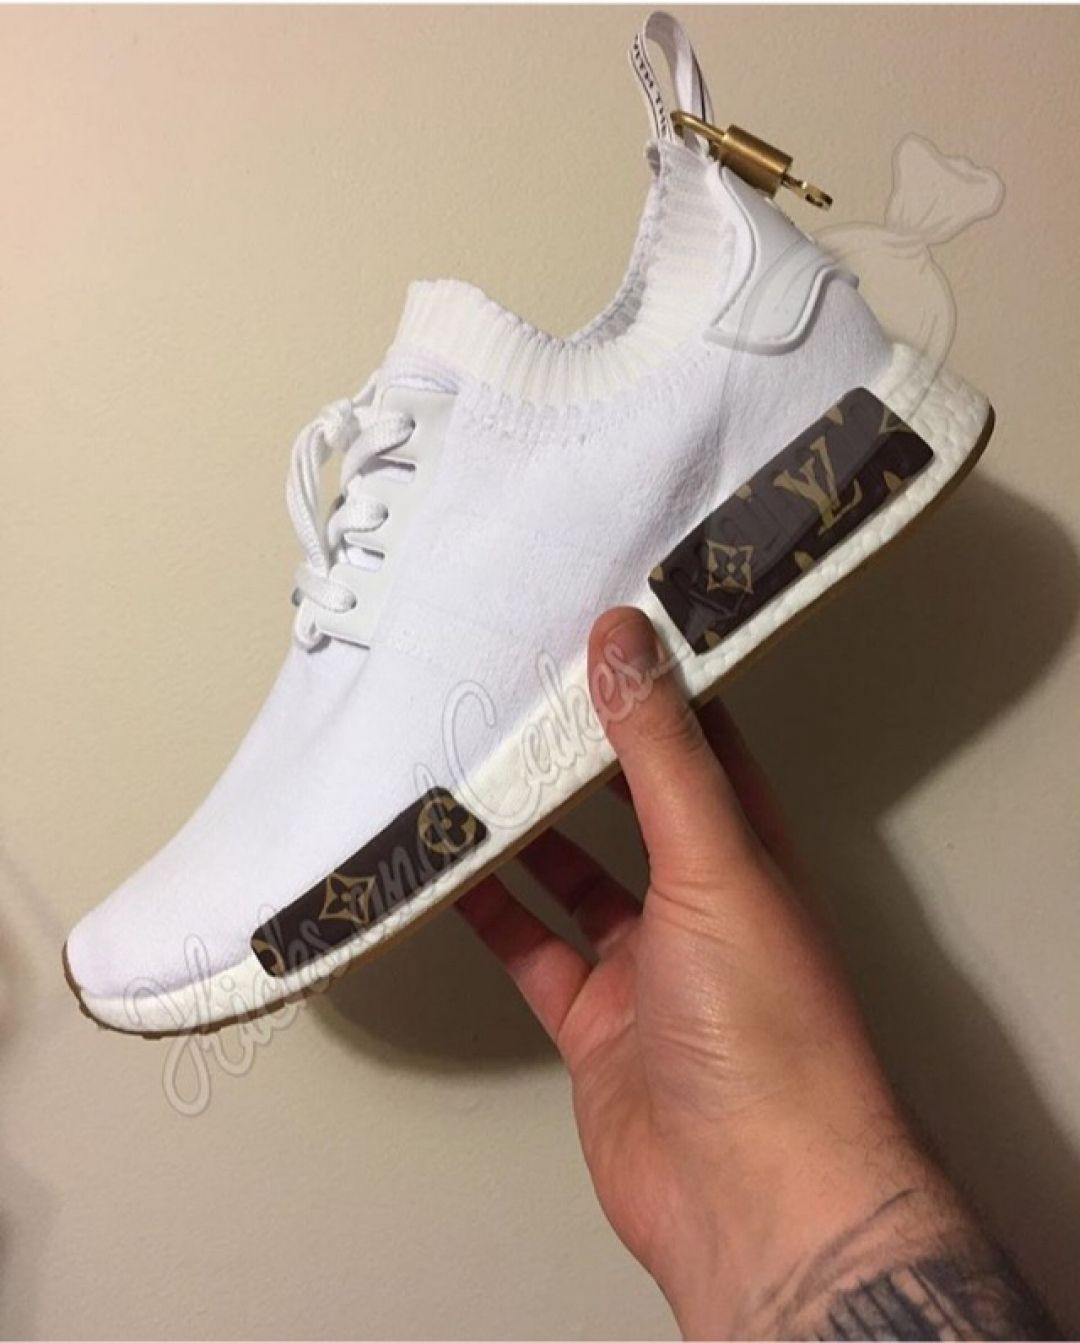 5a29d7611db80 Louis Vuitton NMD by  kicksandcakes Rate 1-10  customizerdepot - - Follow   shoutmynikes For A Dope Sneaker Feed